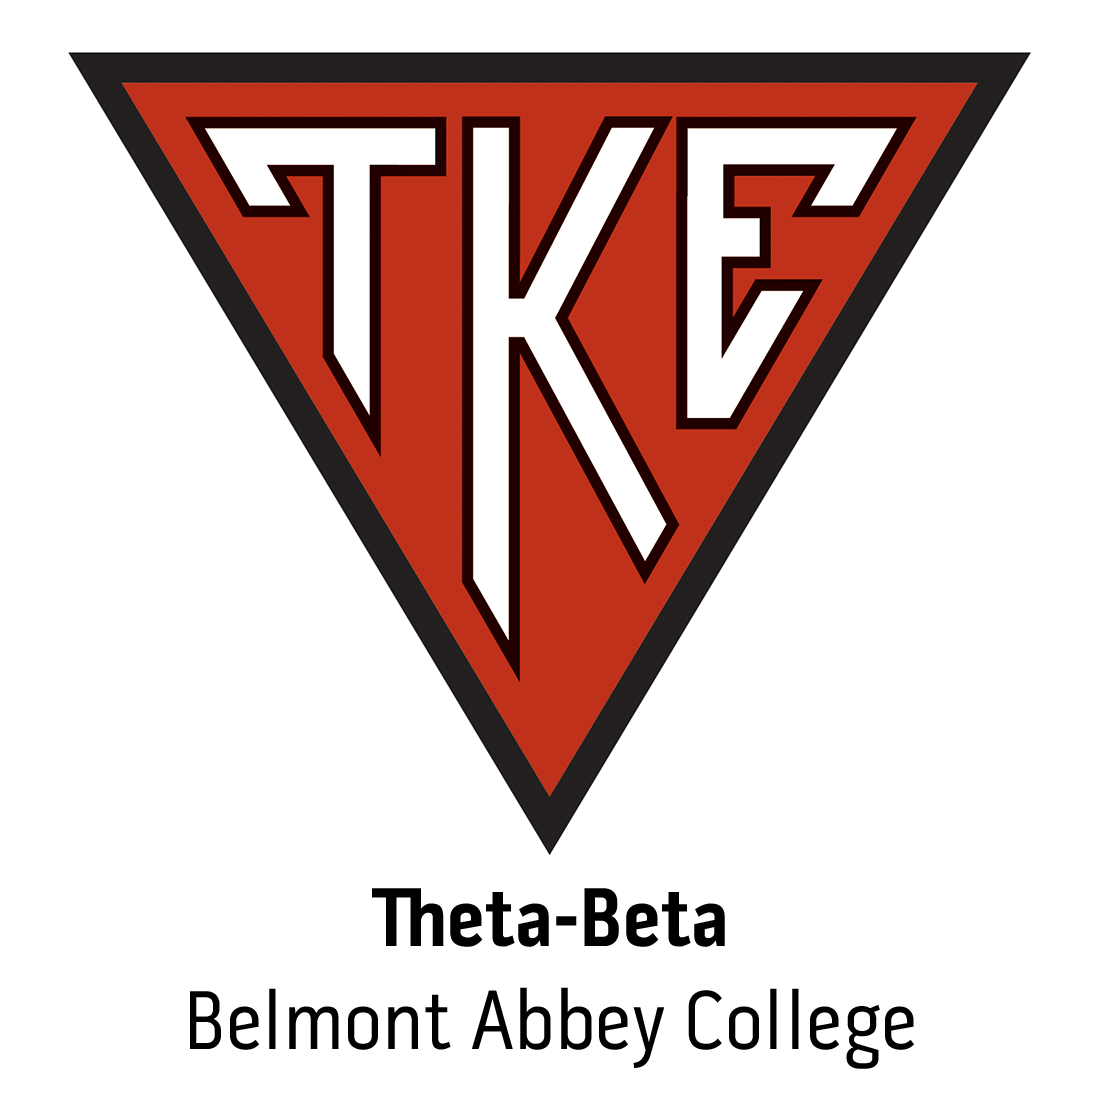 Theta-Beta Chapter at Belmont Abbey College